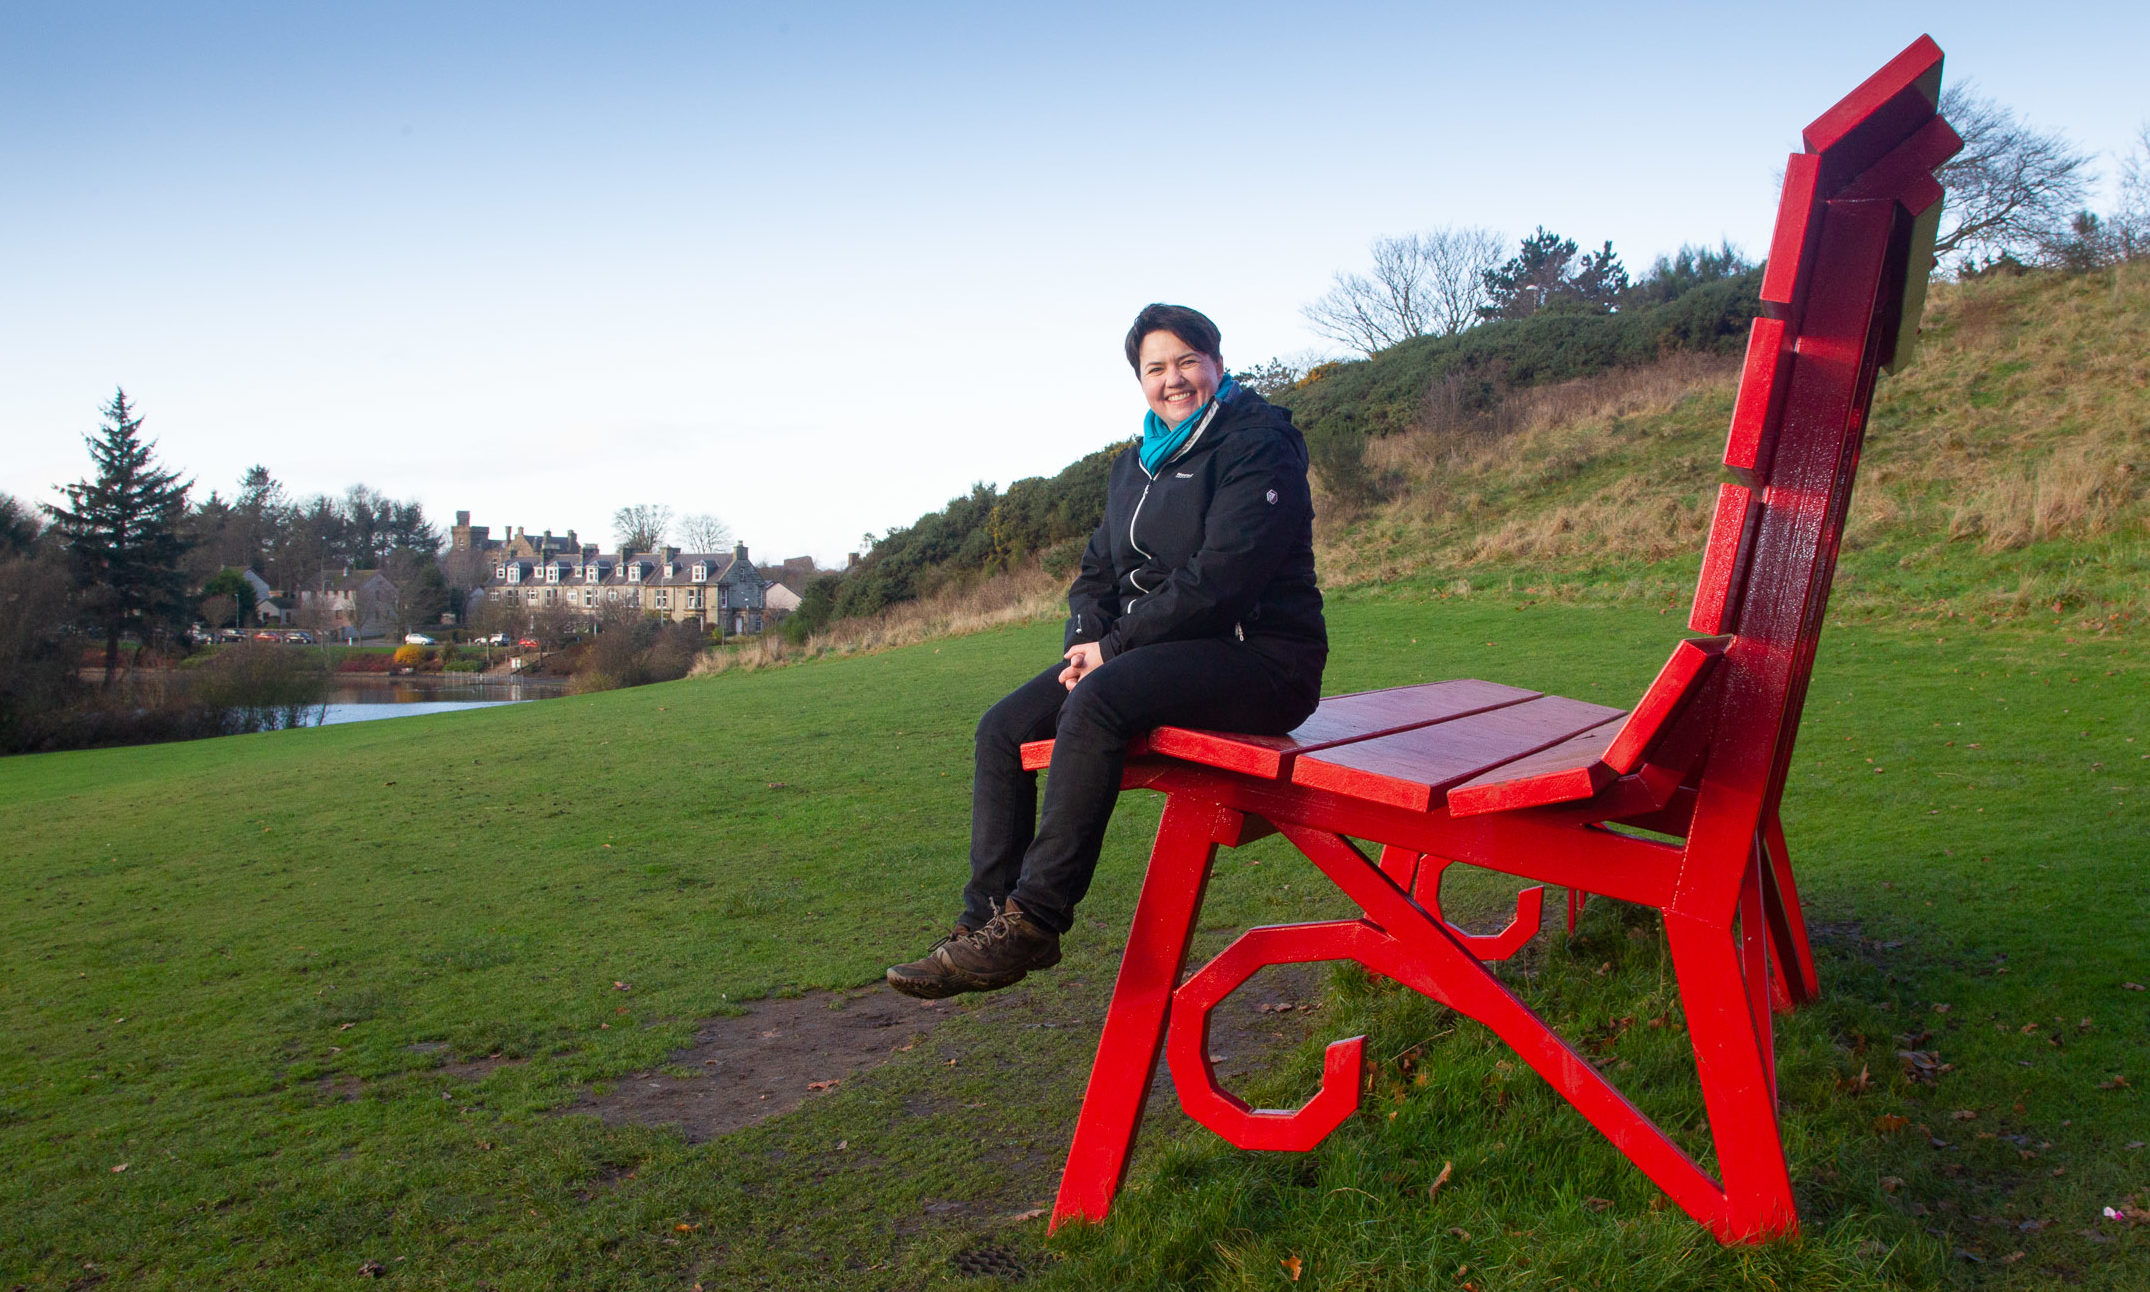 Ruth Davidson at Keptie Pond, Arbroath.